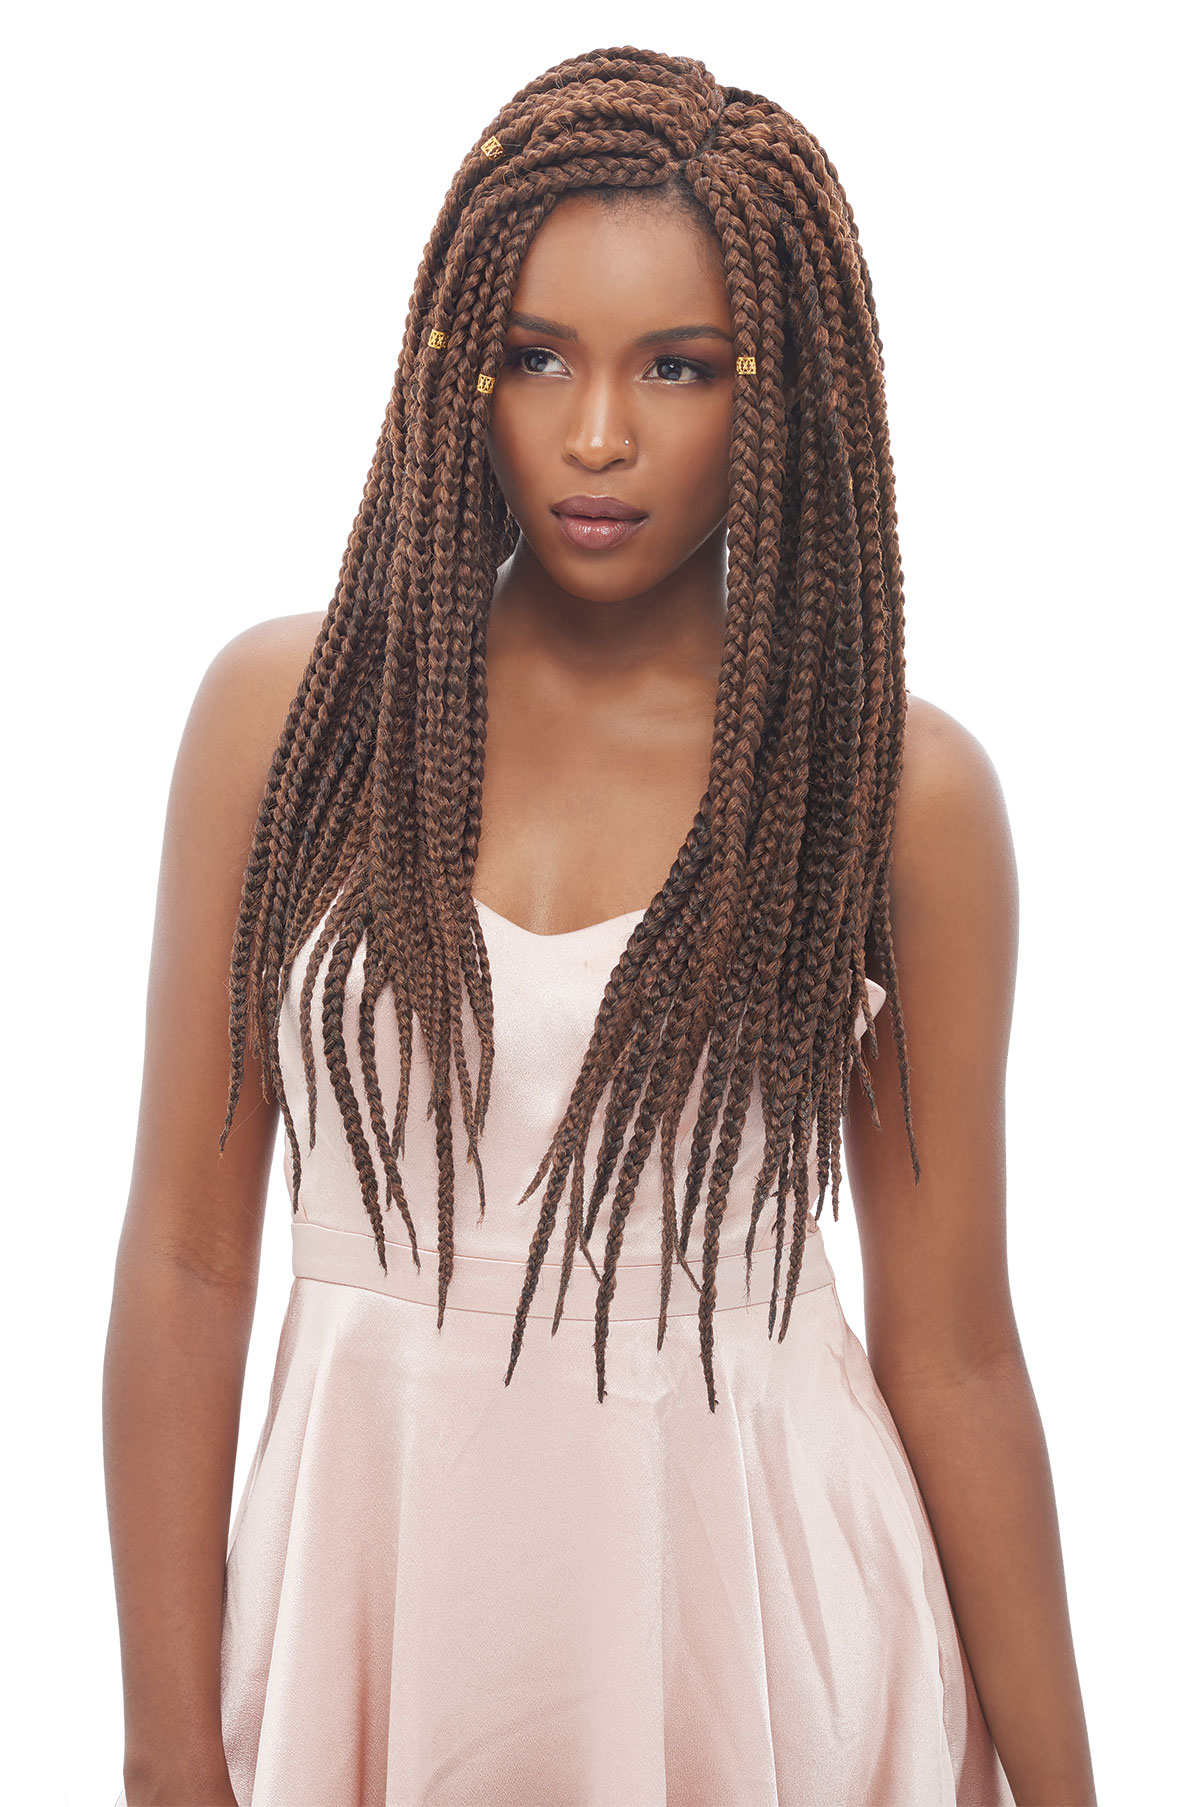 Crochet Braids Medium : MEDIUM-HAVANA-MAMBO-BOX-BRAID-24-034-JANET-COLLECTION-CROCHET-BRAIDING ...